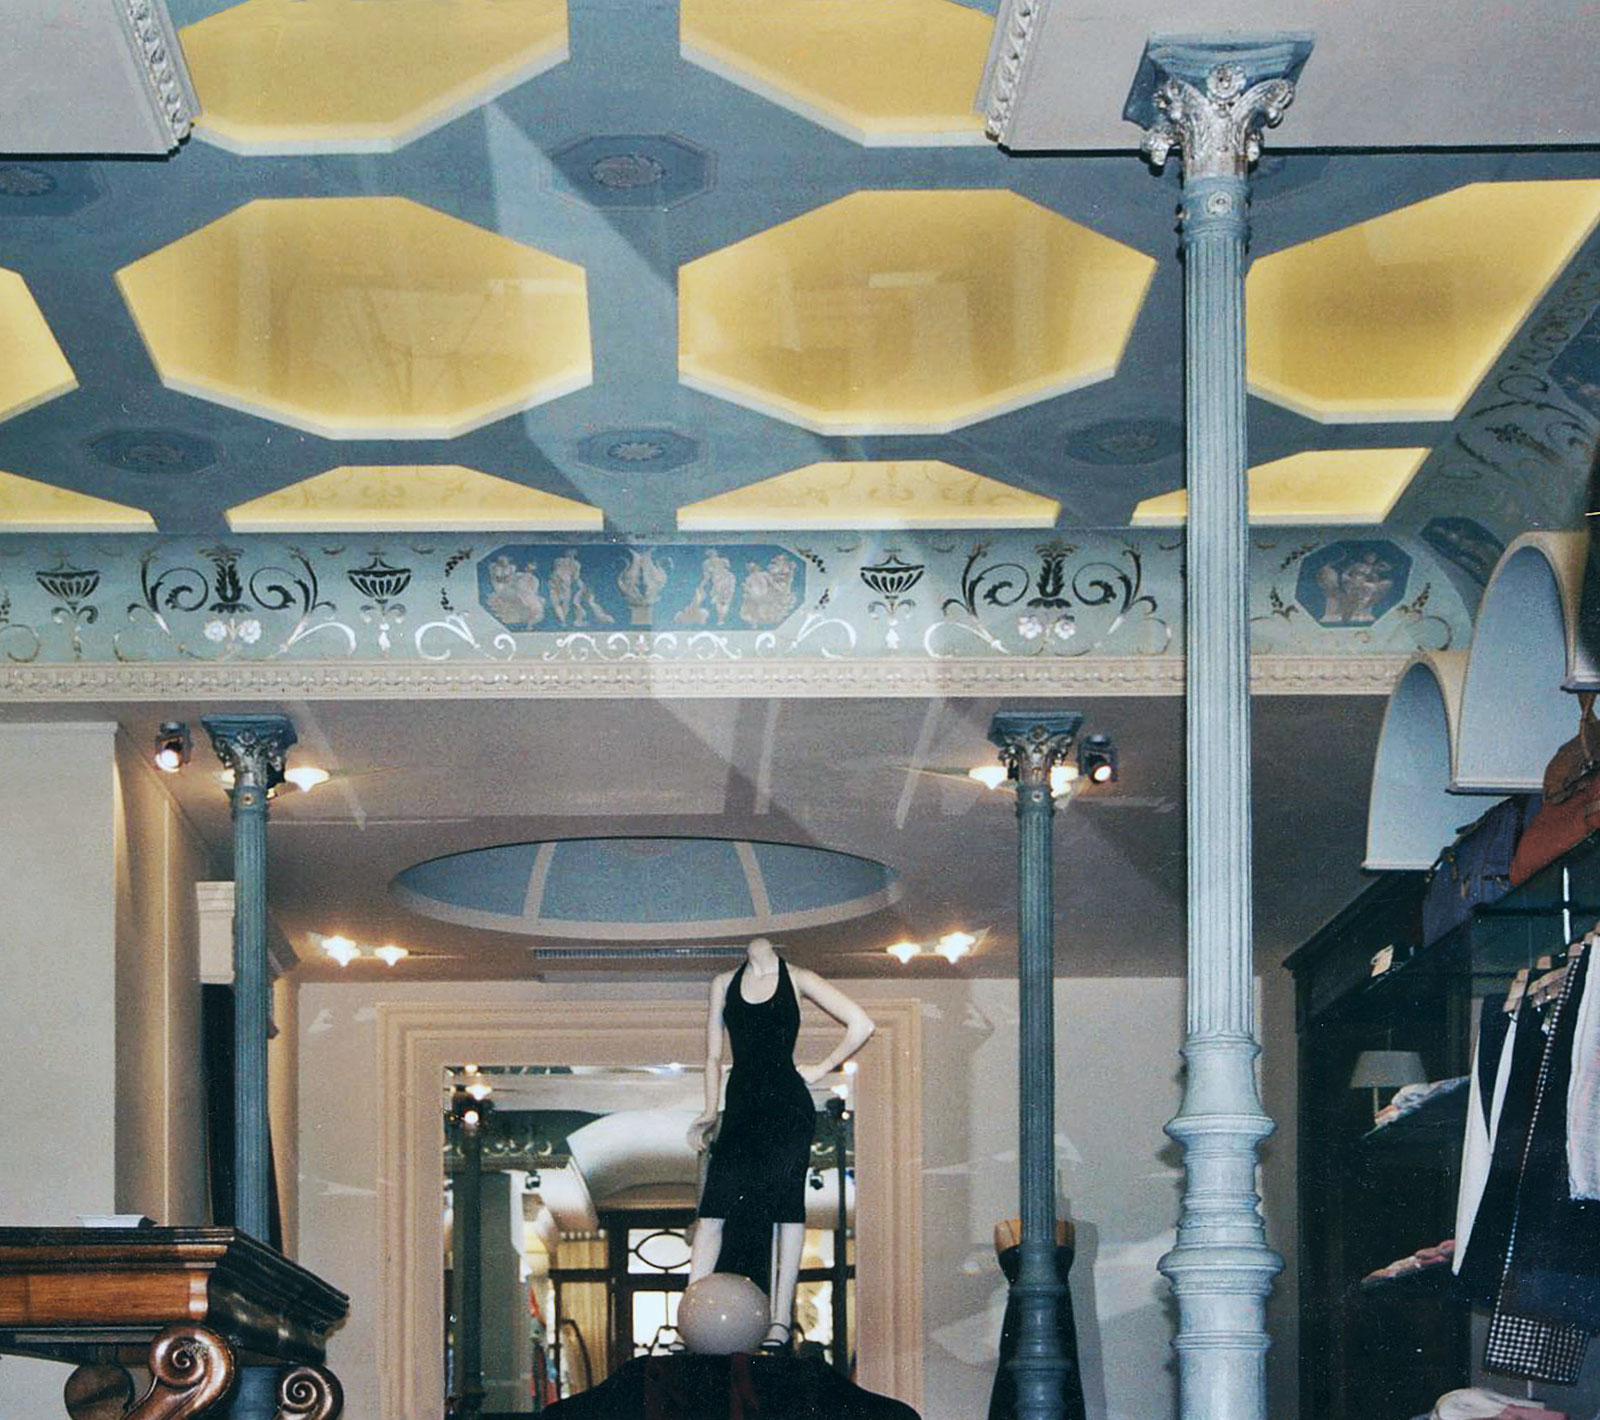 Fashion store in Italy - Alexander Hamilton - Decorative Painter - London